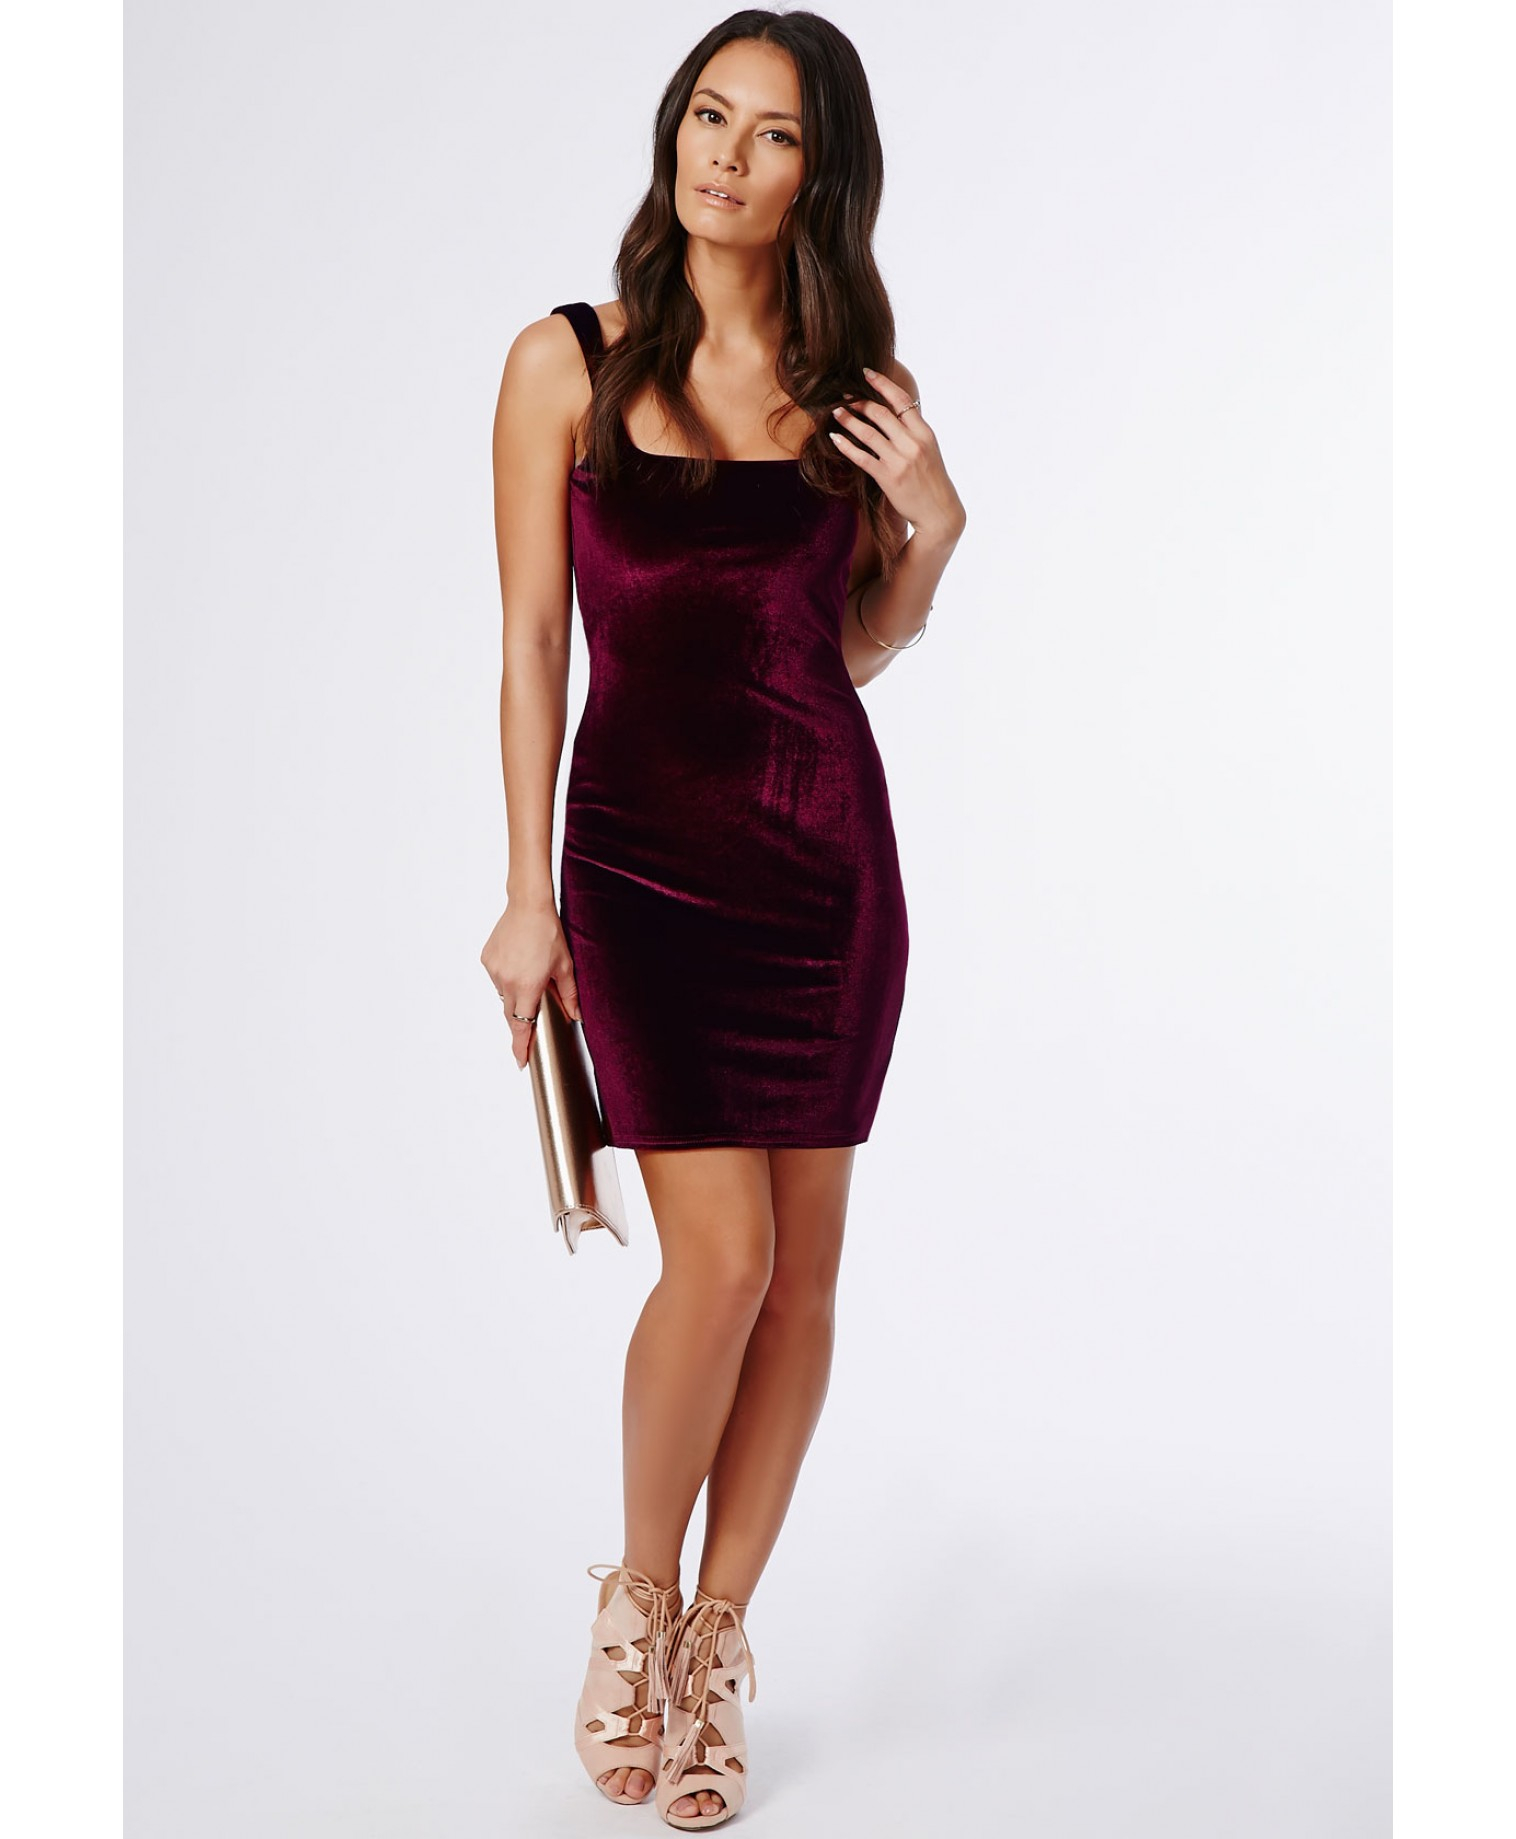 646c9cb4800d Missguided Pipin Velvet Bodycon Dress Burgundy in Purple - Lyst